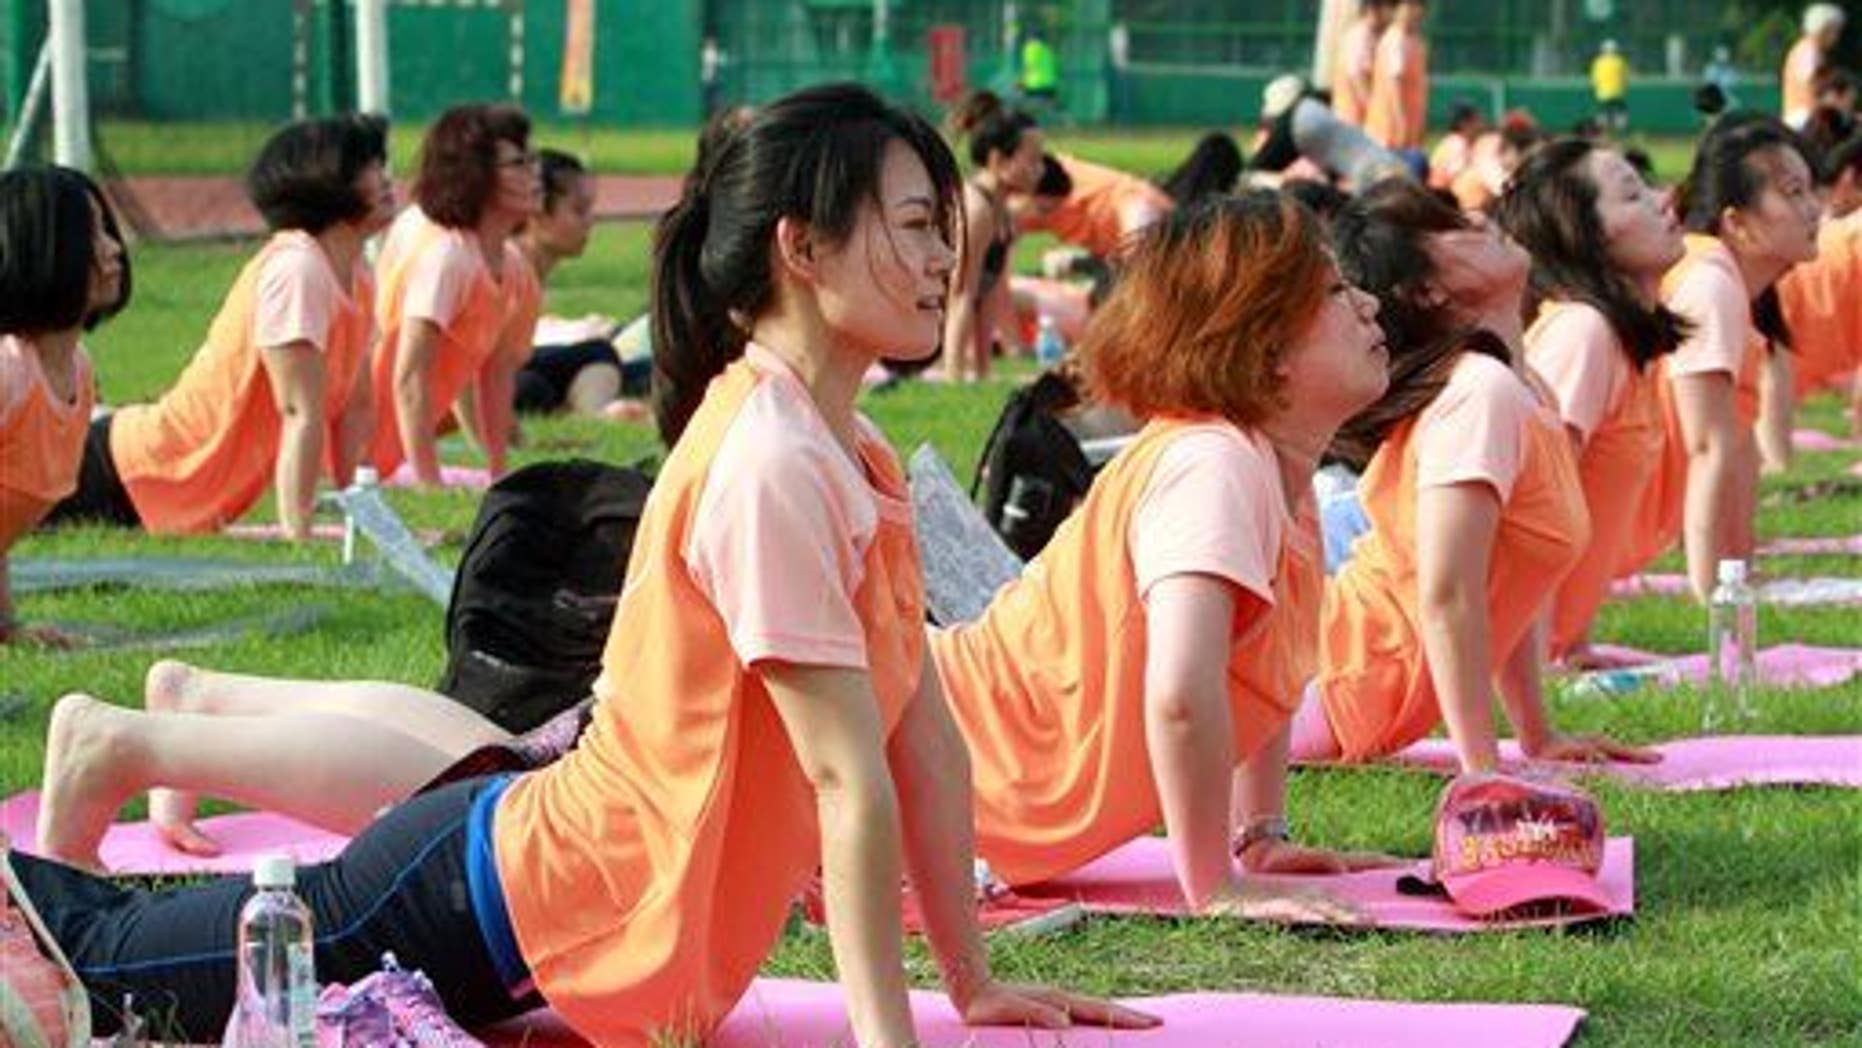 Taiwanese perform yoga poses at the start of International Yoga Day in Taipei, Taiwan, June 21, 2015.